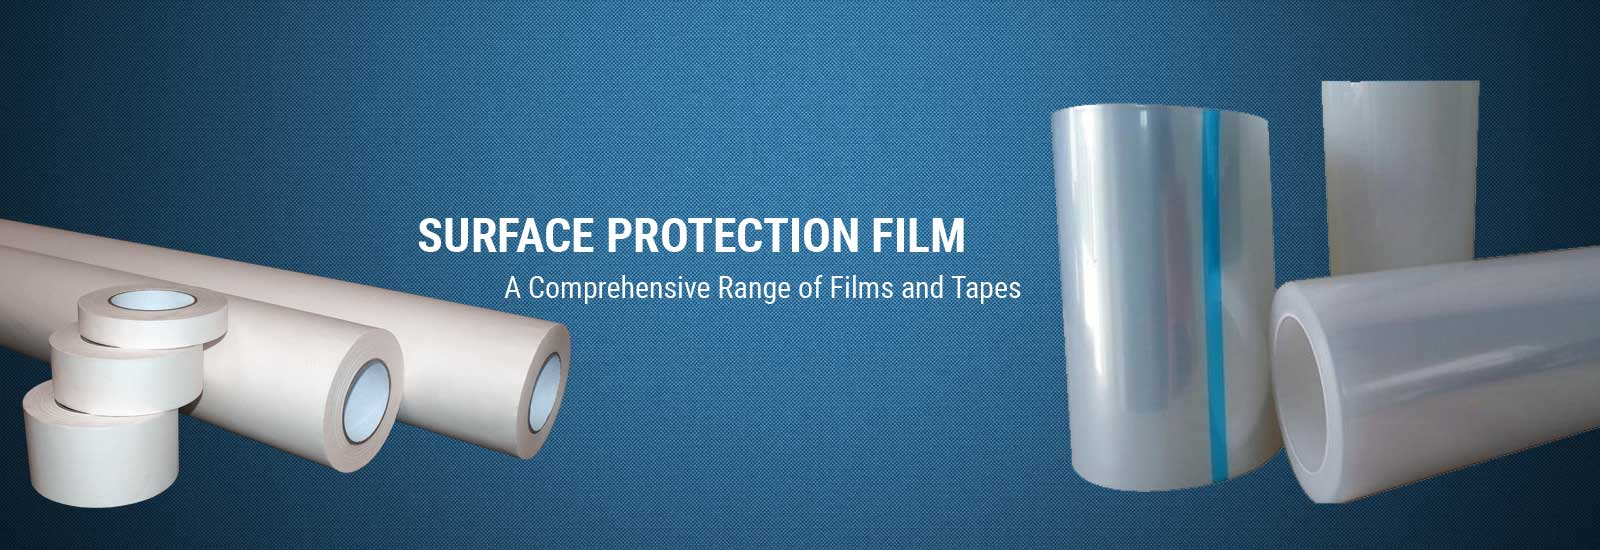 Surface Protection Film Manufacturers in Belgaum